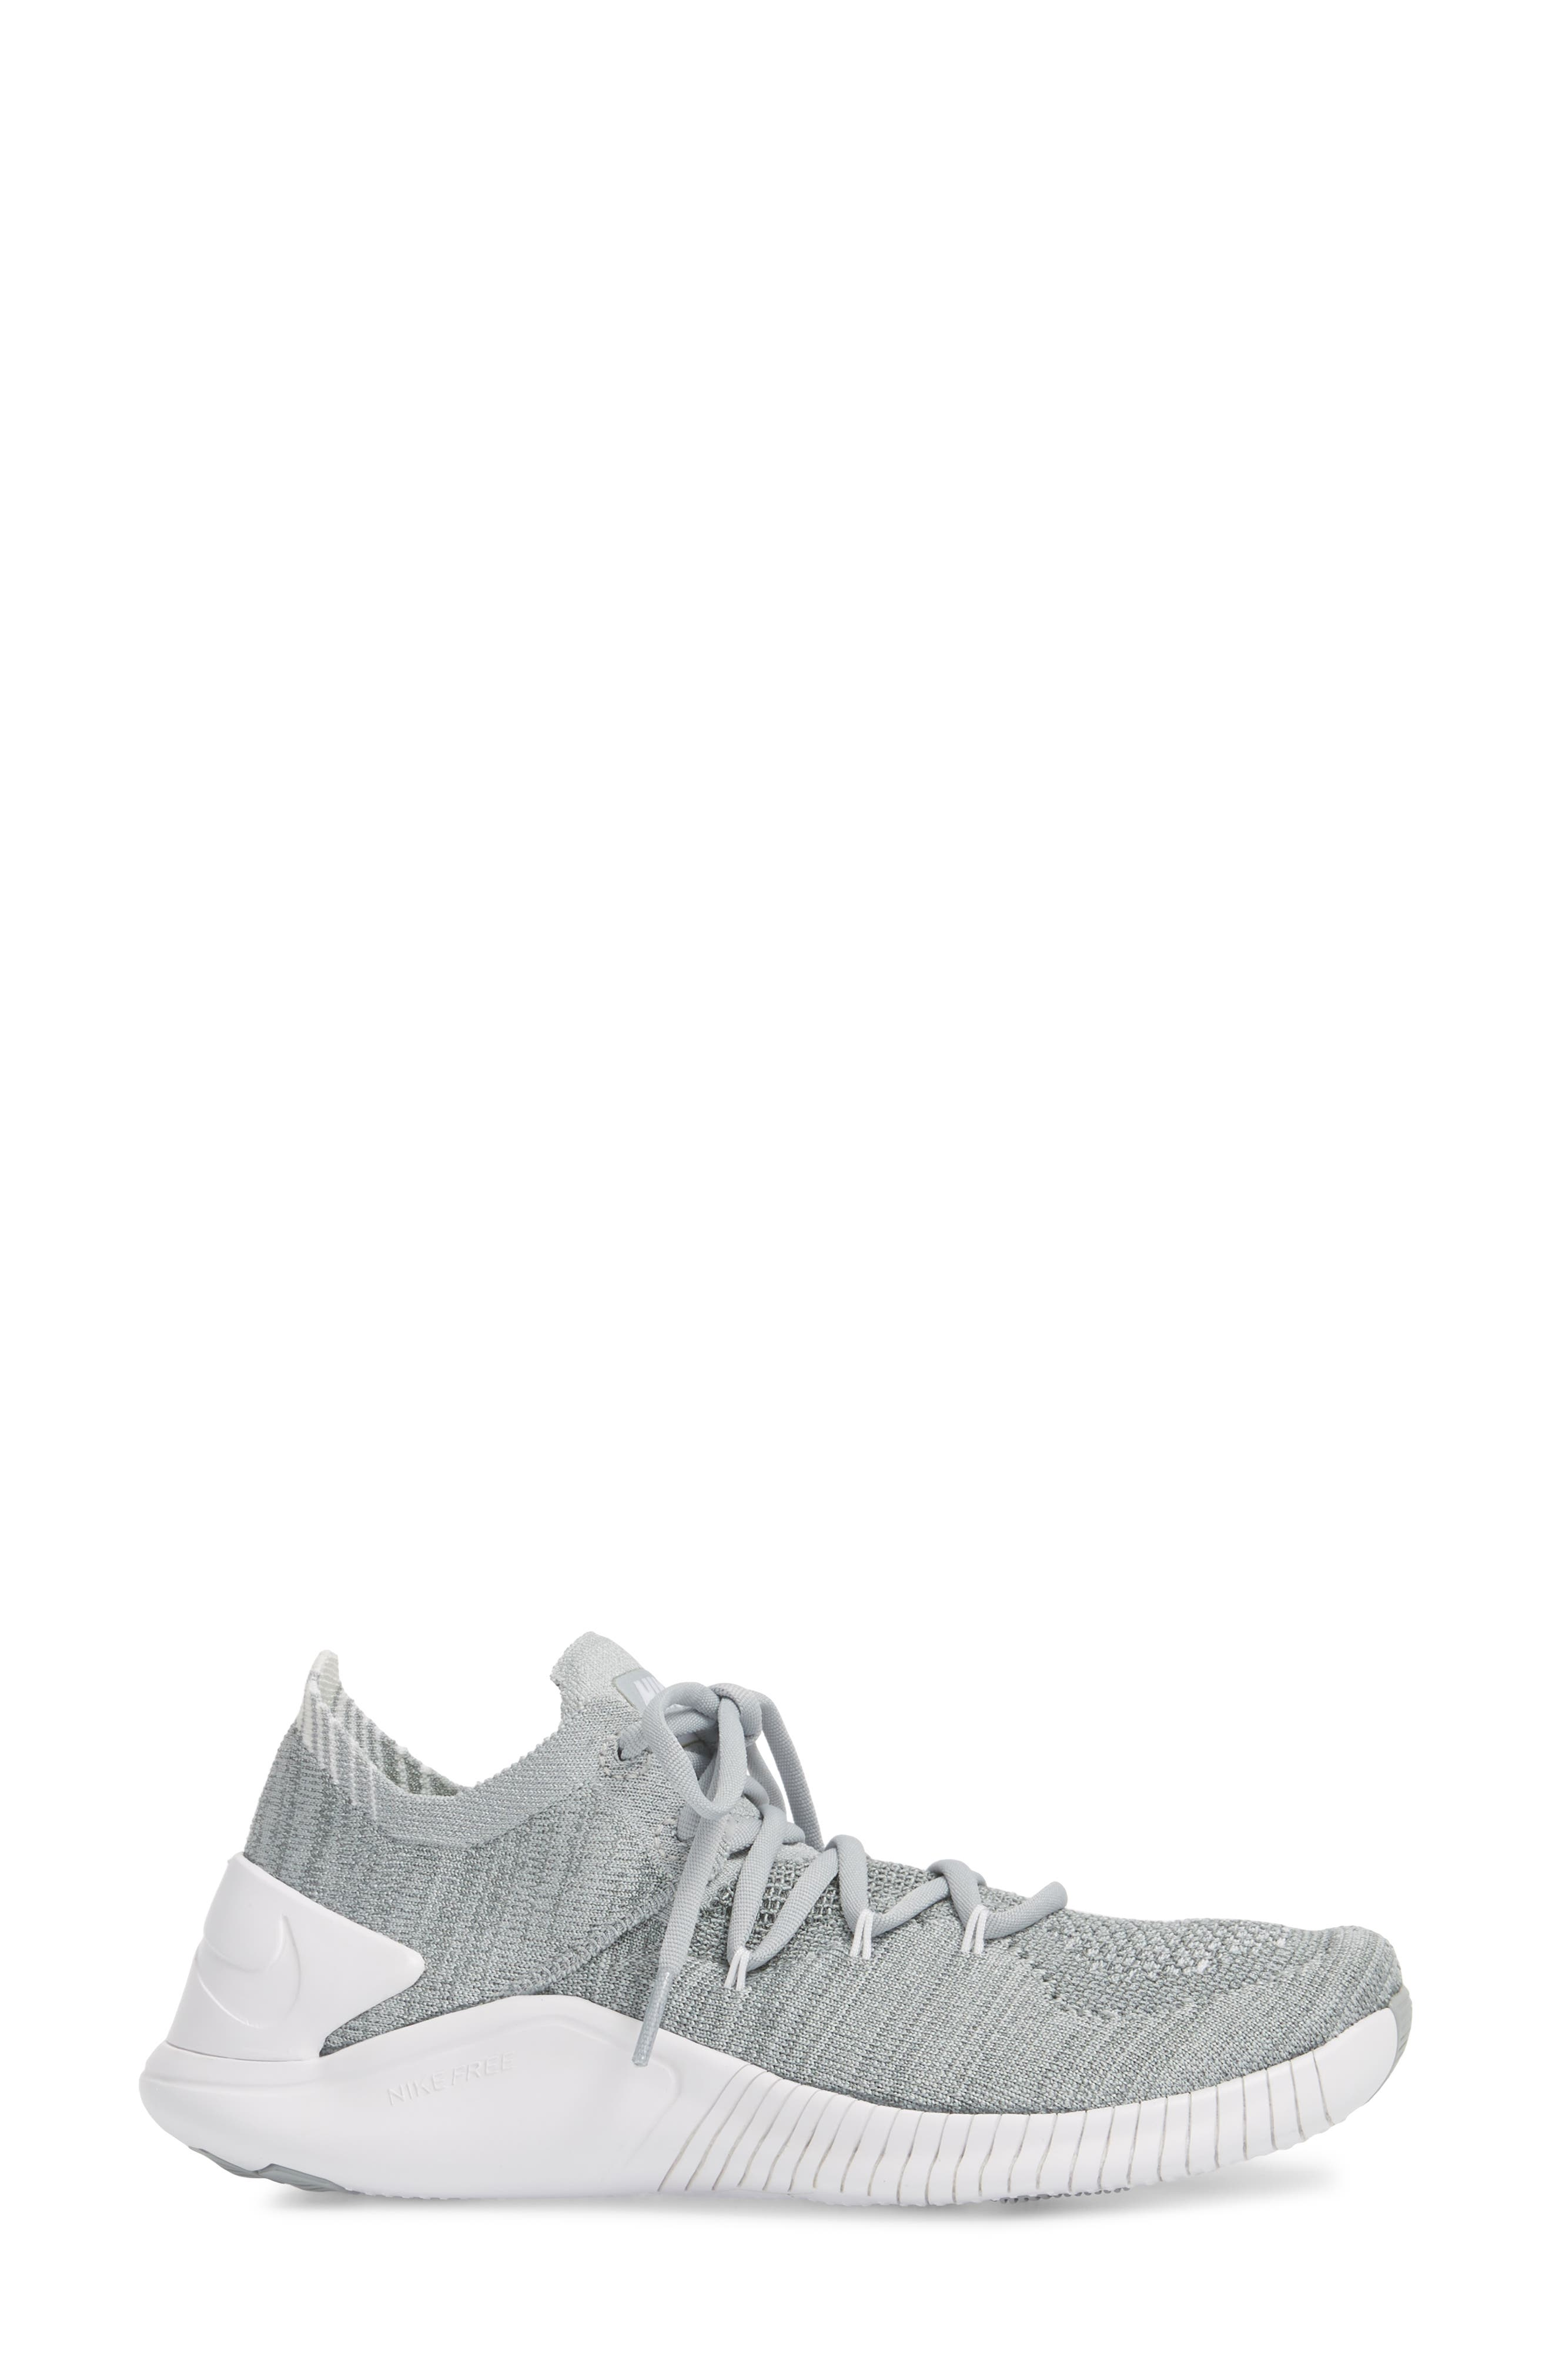 Free TR Flyknit 3 Training Shoe,                             Alternate thumbnail 3, color,                             WOLF GREY/ WHITE